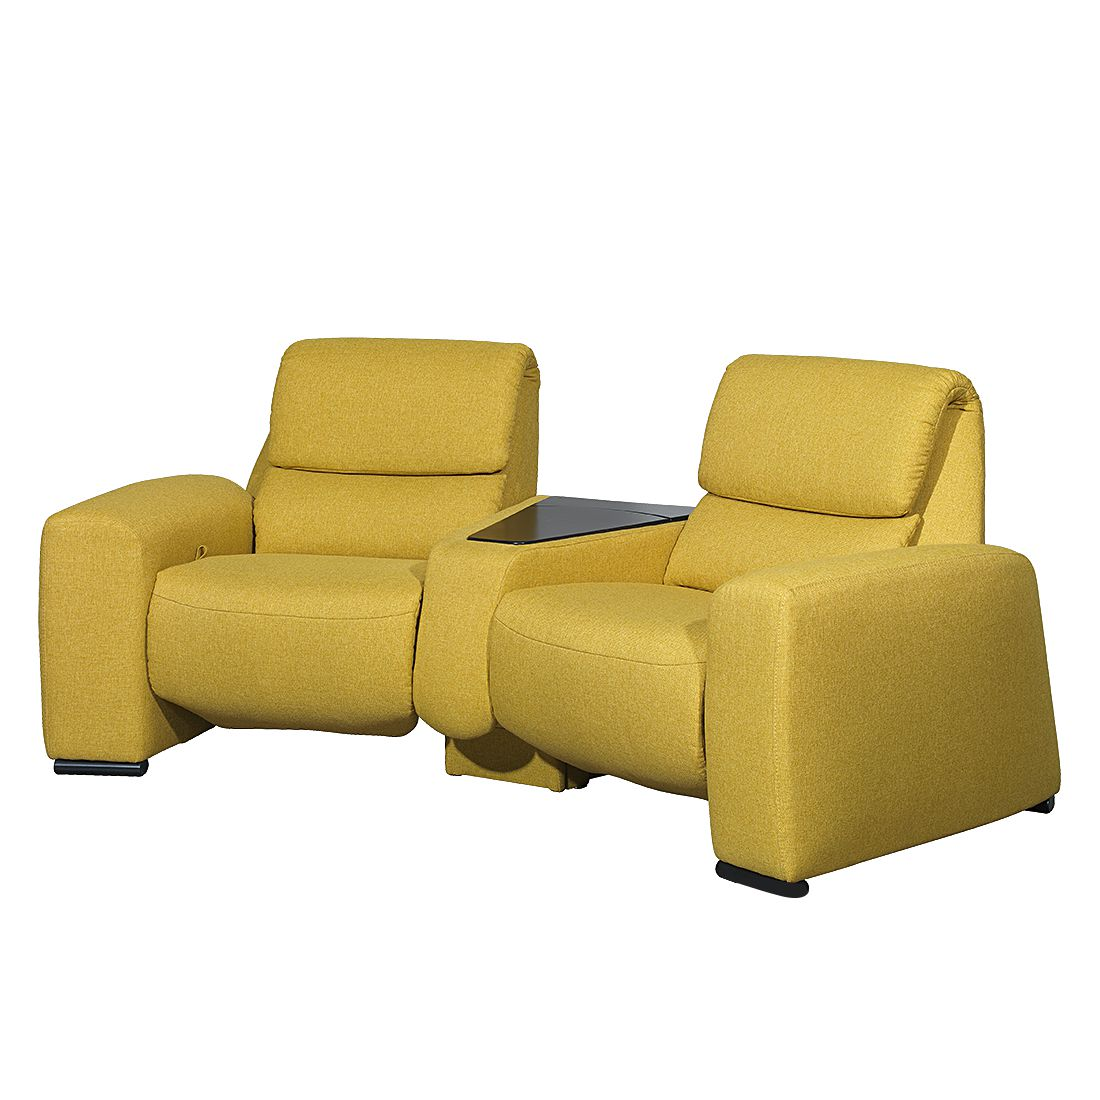 Relaxsofa Space (2-Sitzer) - Webstoff - Mit Relaxfunktion - Gelb, trendline by Ada